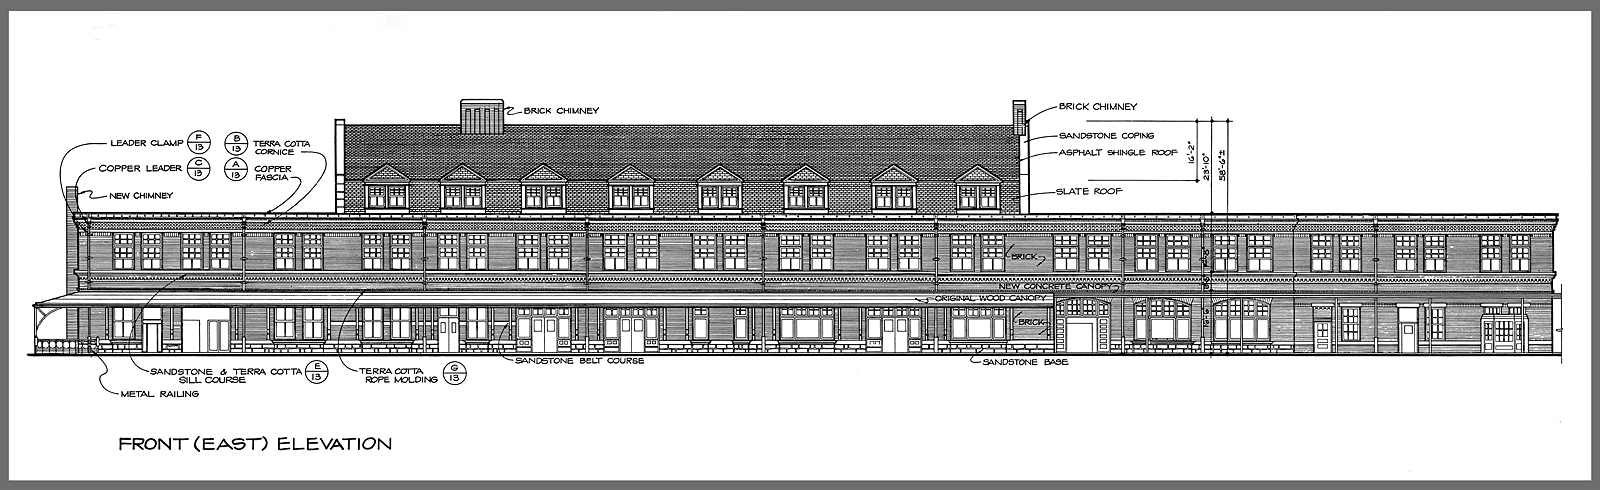 Front elevation drawing of the Harrisburg Train Station.   (below) Detail drawings of the fireplace and floor tile work. Drawings collection of the Historic American Engineering Record, National Park Service drawn by Harry Weese & Associates  .